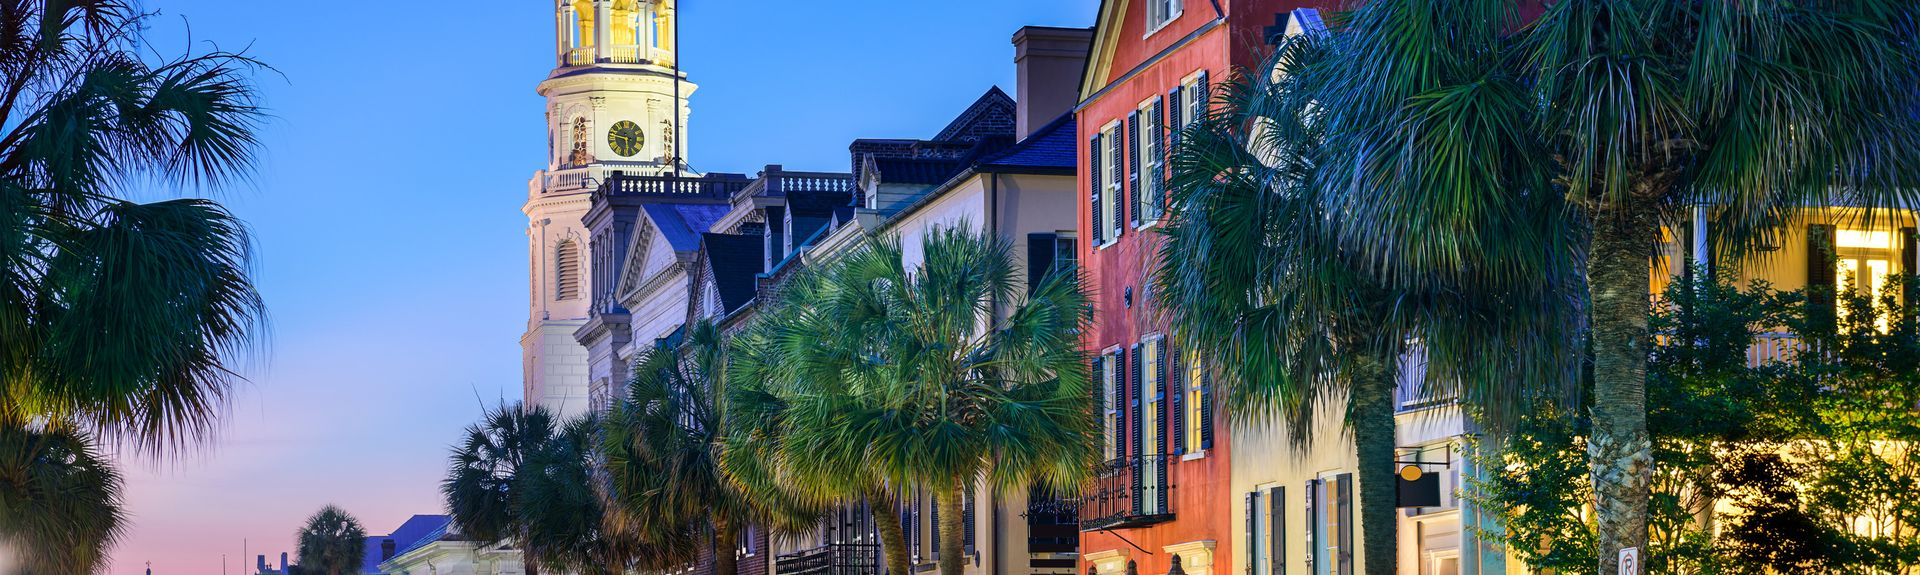 Charleston, Carolina do Sul, Estados Unidos